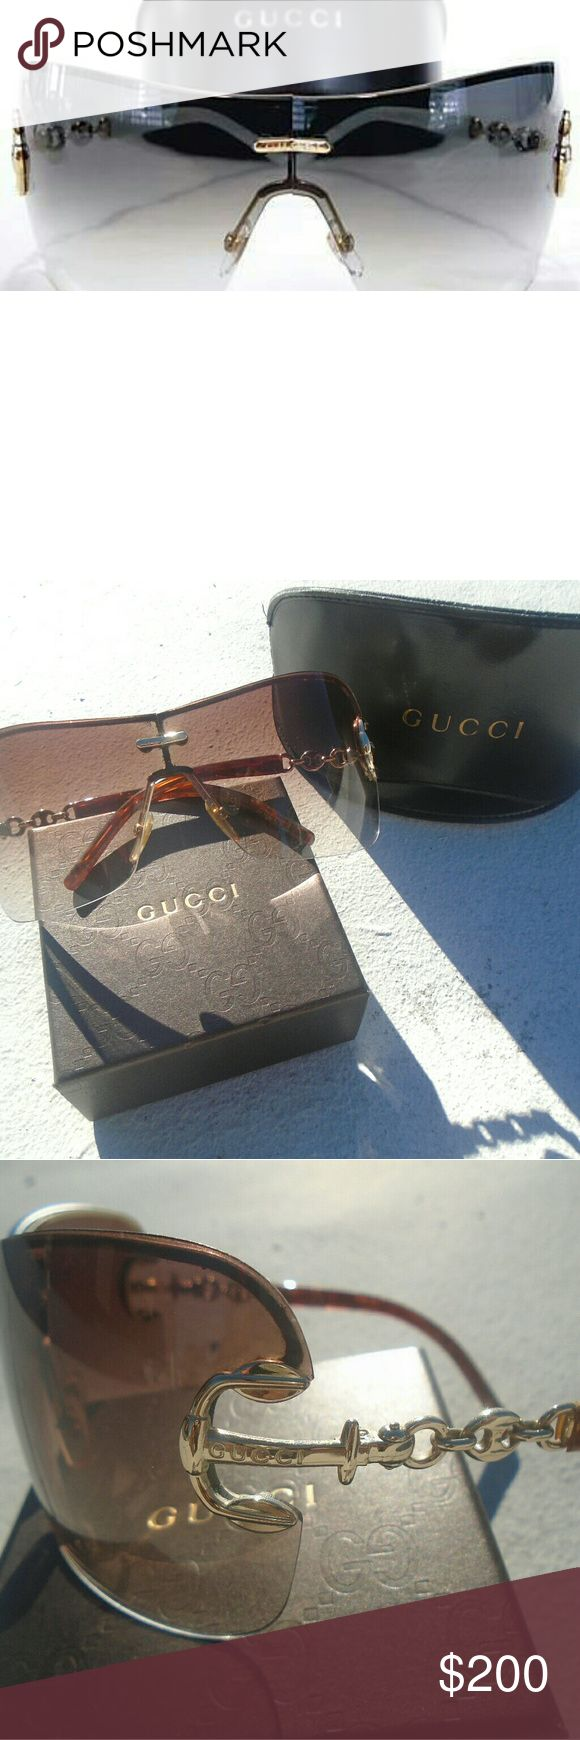 GUCCI SUNGLASSES GG 2771/S GUCCI SUNGLASSES VIOLET WITH GOLD LINK ARMS  GG 2771 PRE-LOVED MINOR UN VISIBLE SCRATCH PICTURED SUGGESTED SELLER  SHOP WITH CONFIDENCE!  SAME DAY SHIPPING Gucci Accessories Glasses